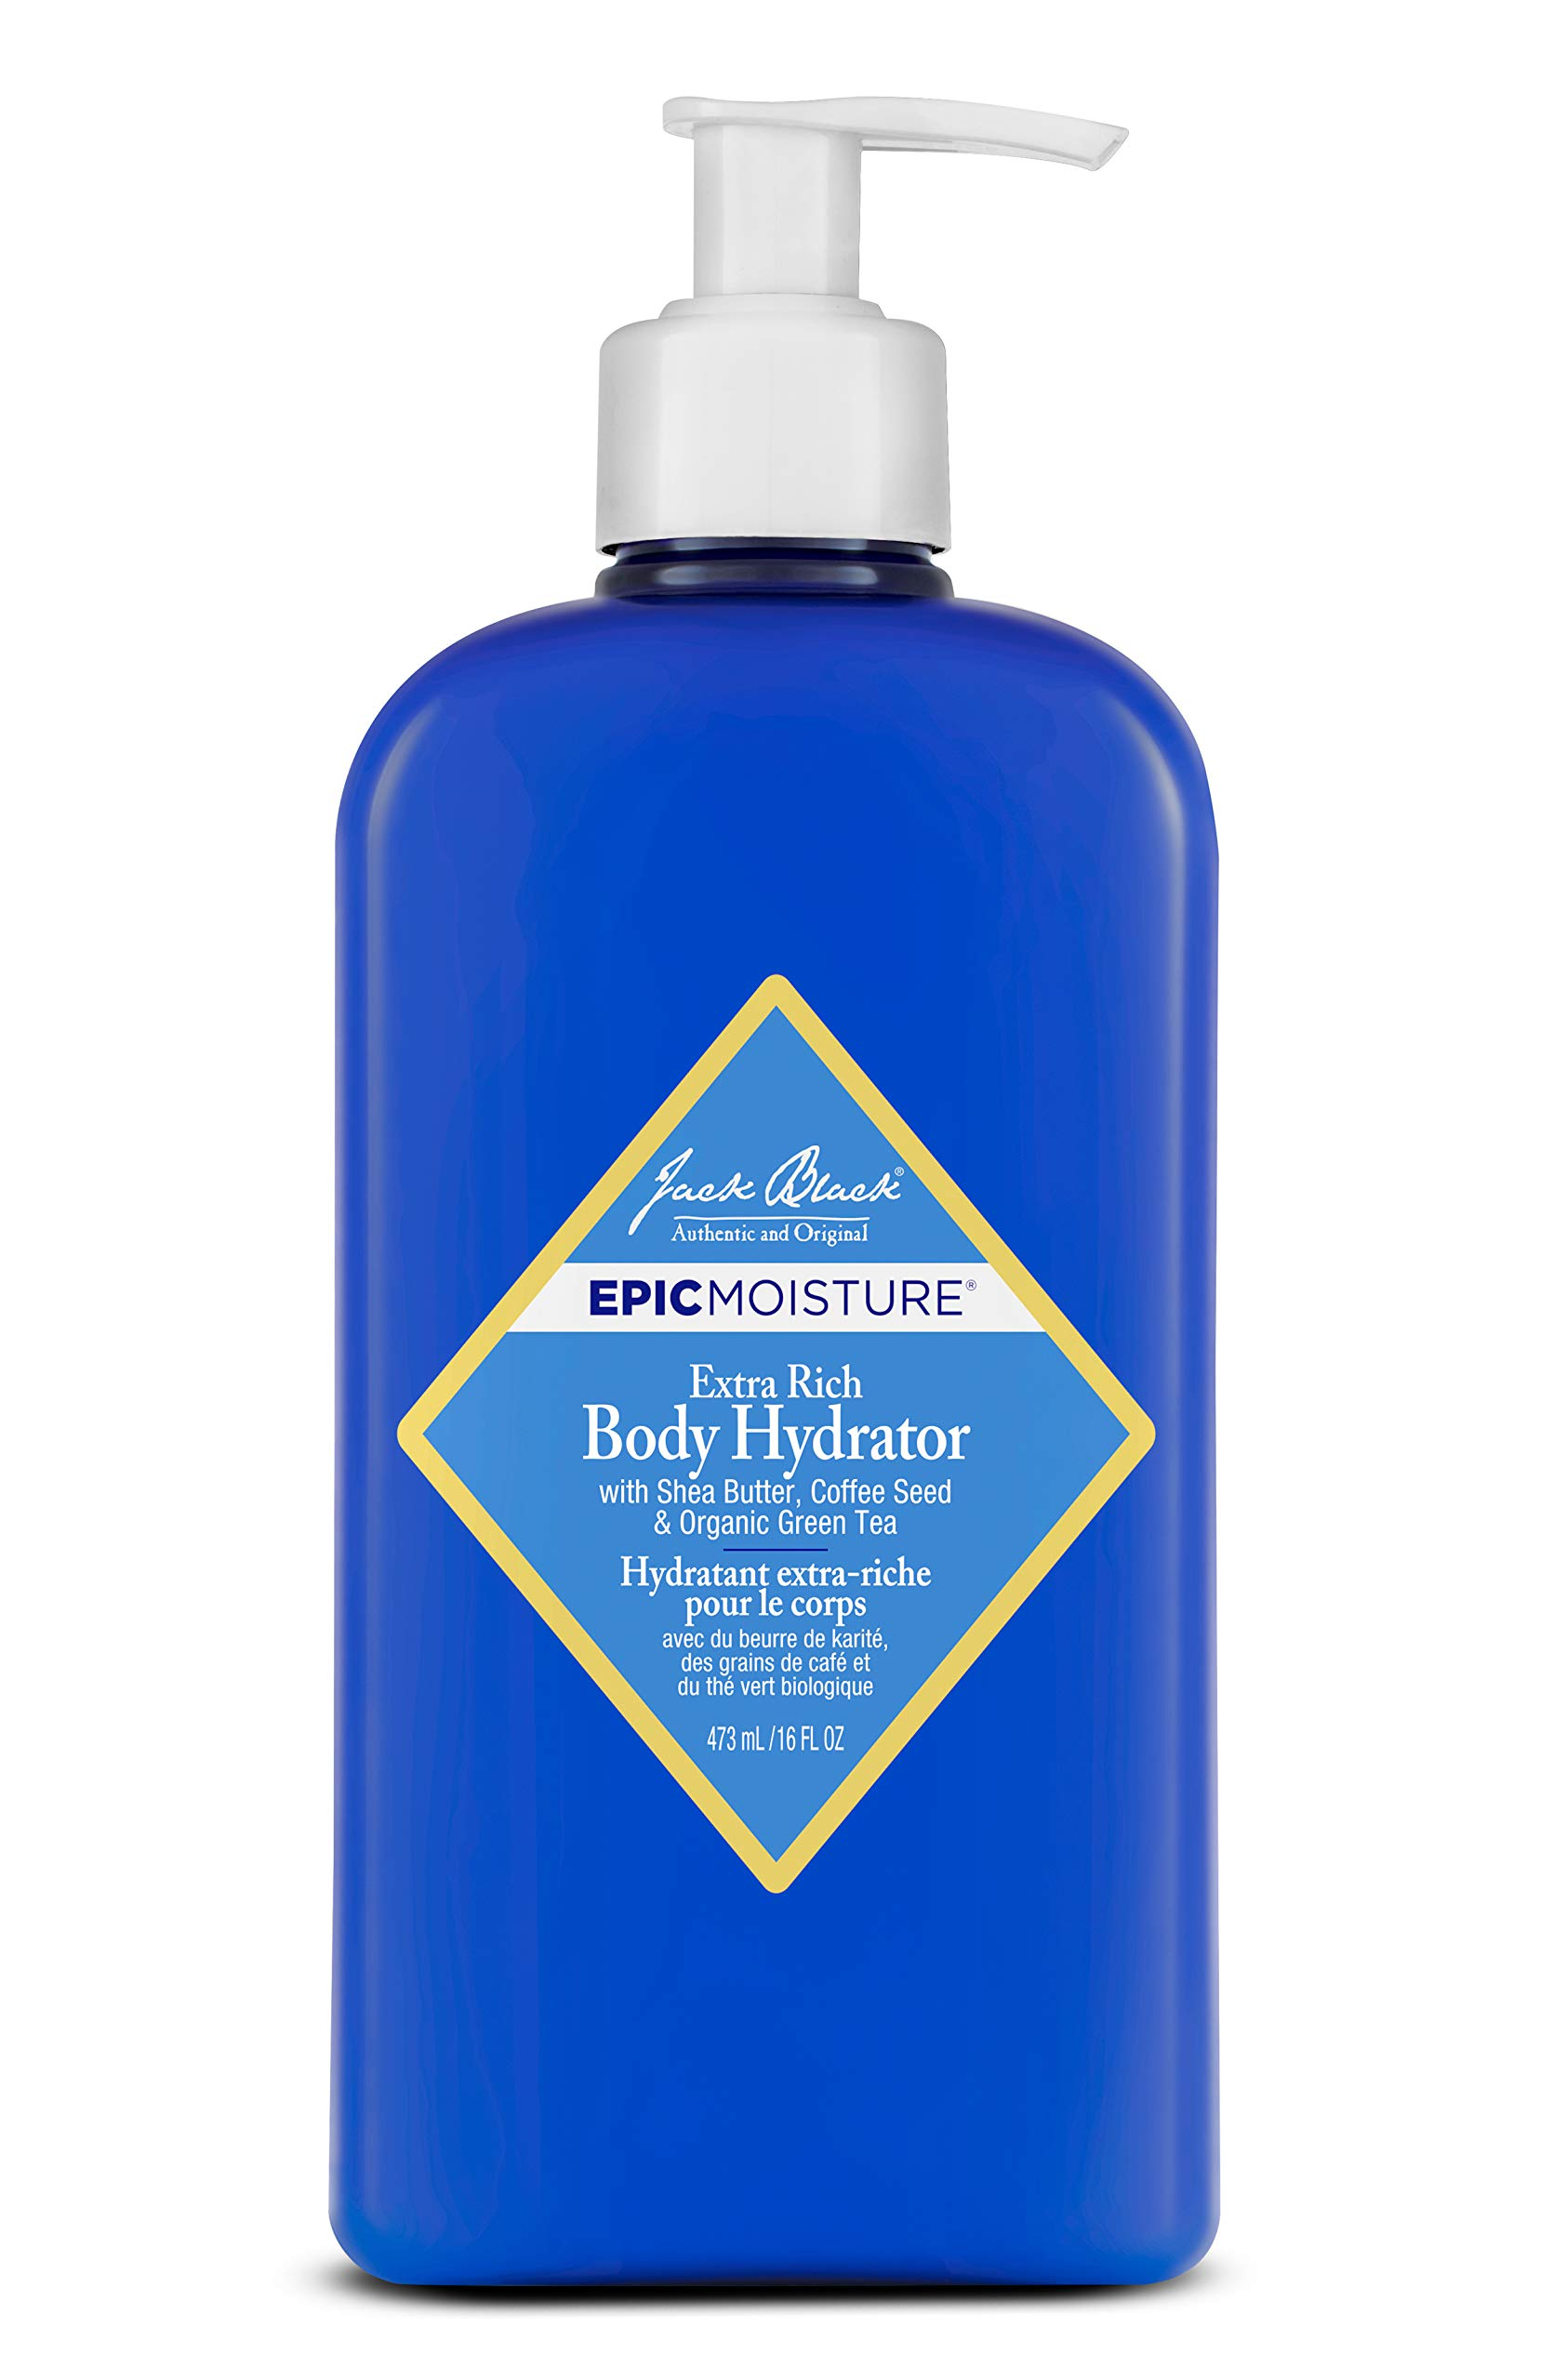 Jack Black - Extra Rich Body Hydrator, 16 fl oz - Epic Moisture for Men and Women, Emollient Lotion, Lasting Hydration for Skin, Shea Butter, Coffee Seed, Organic Green Tea by Jack Black